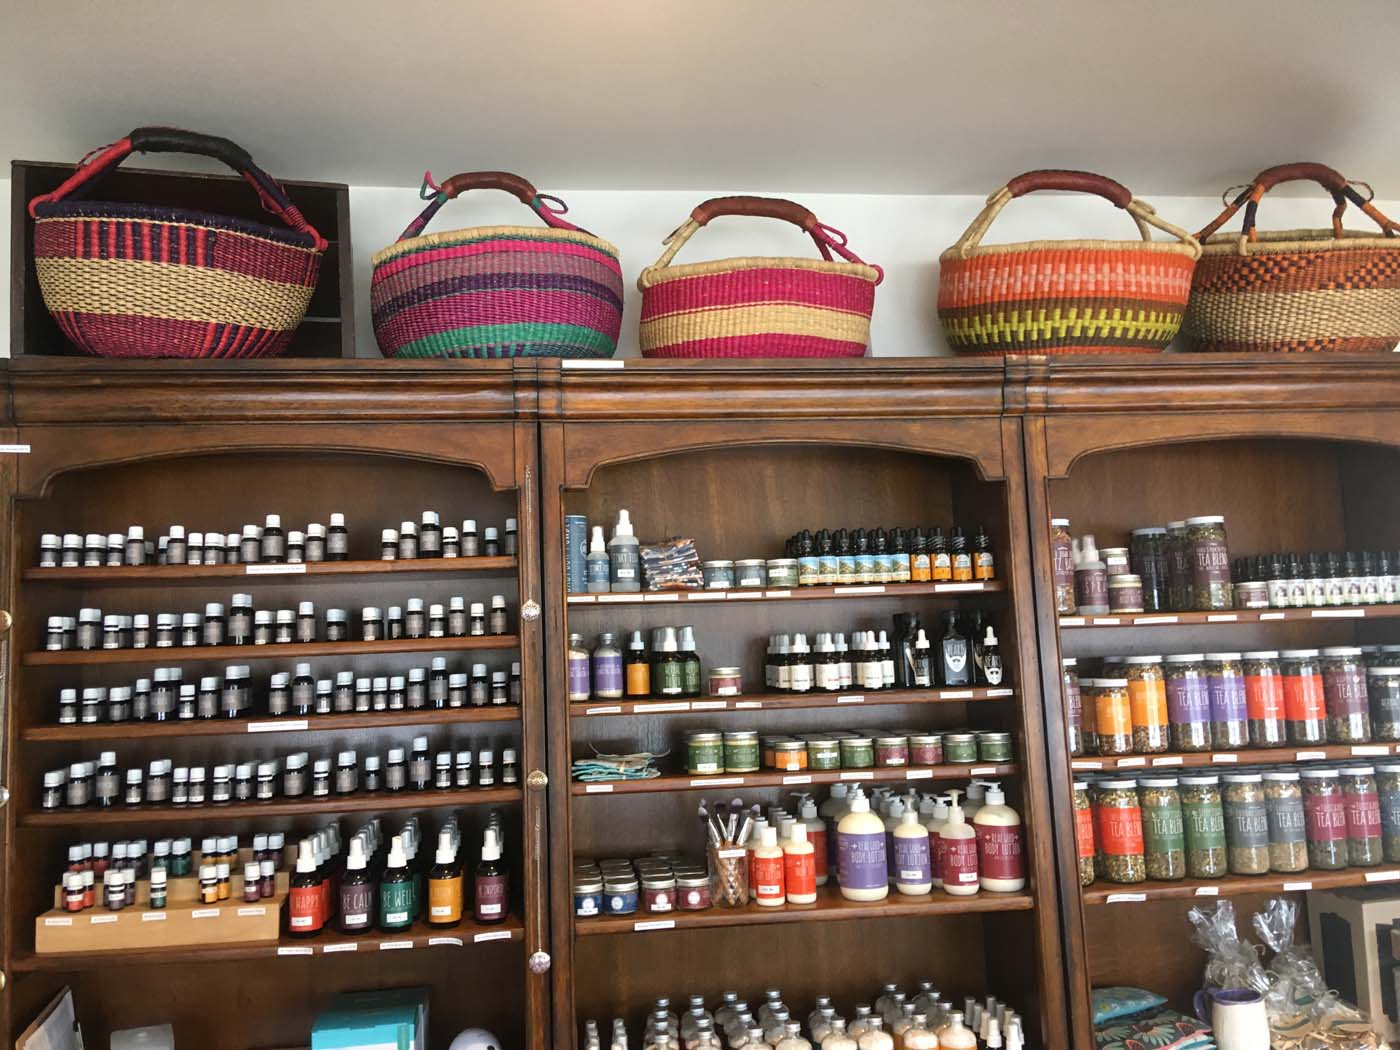 Displaying baskets up high in stores is a very effective use of space